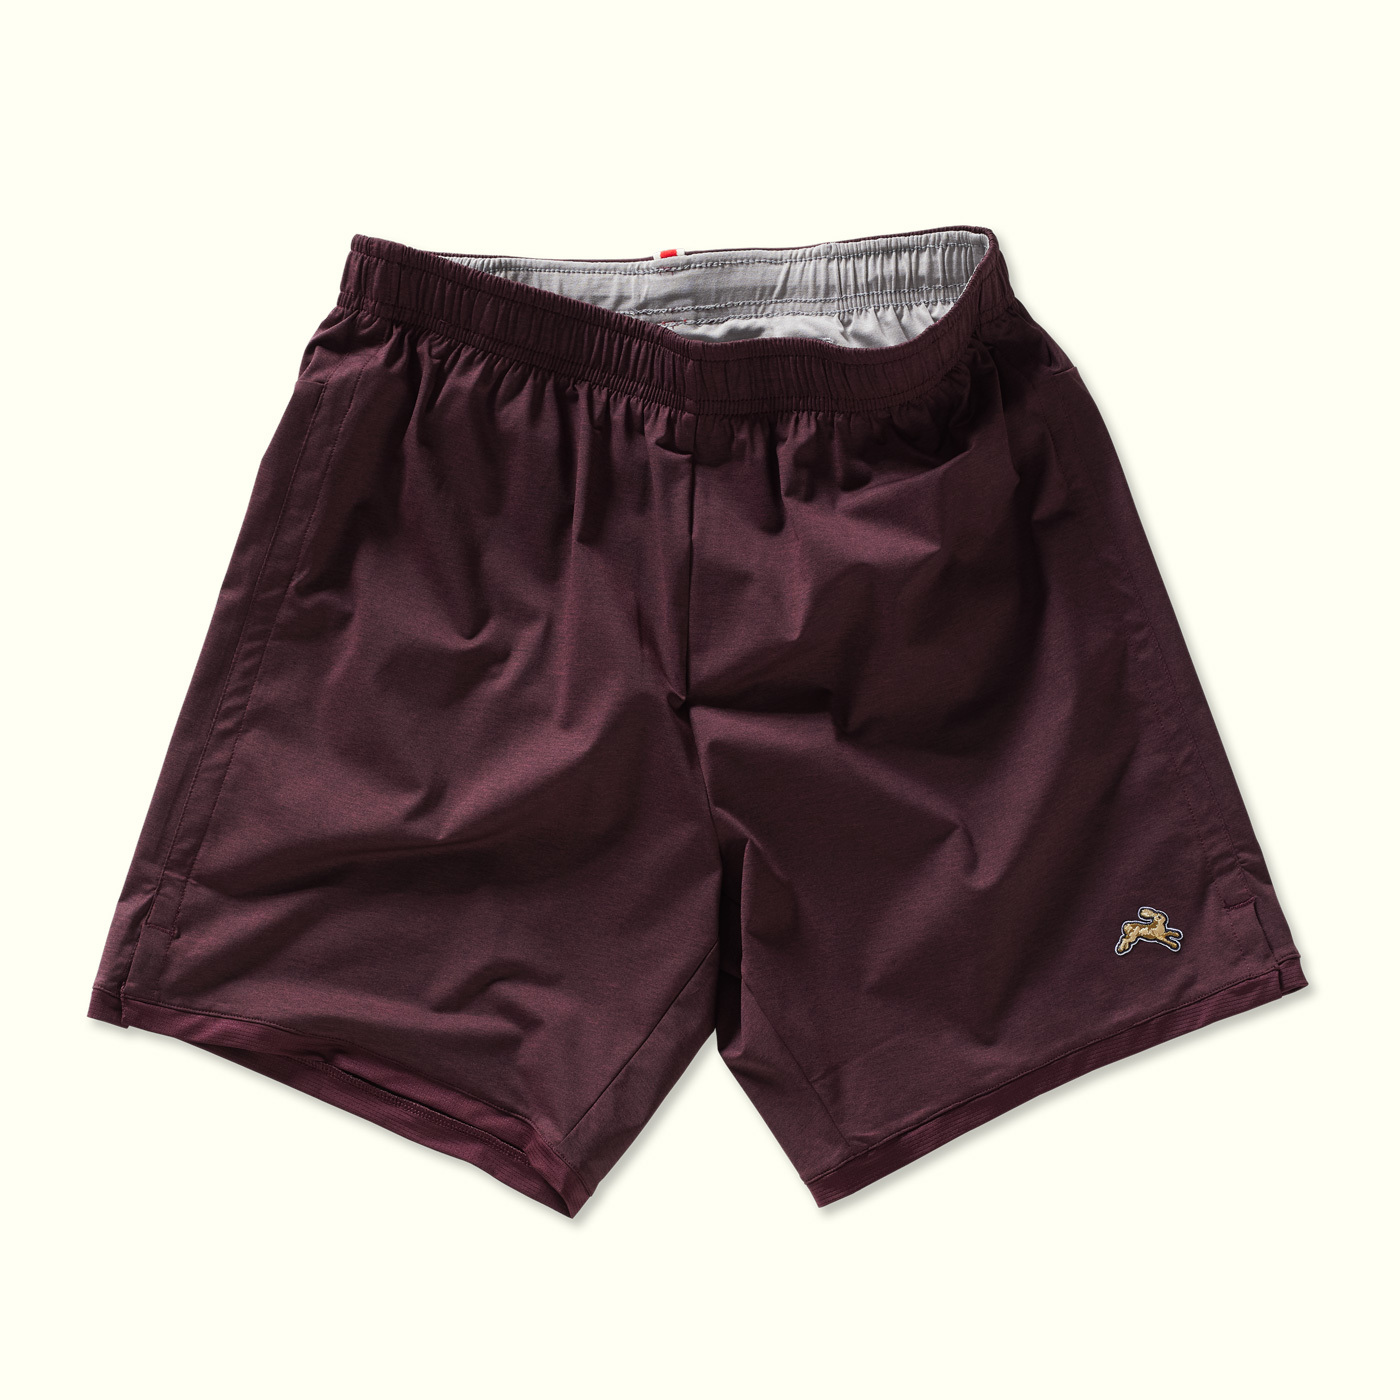 Session shorts